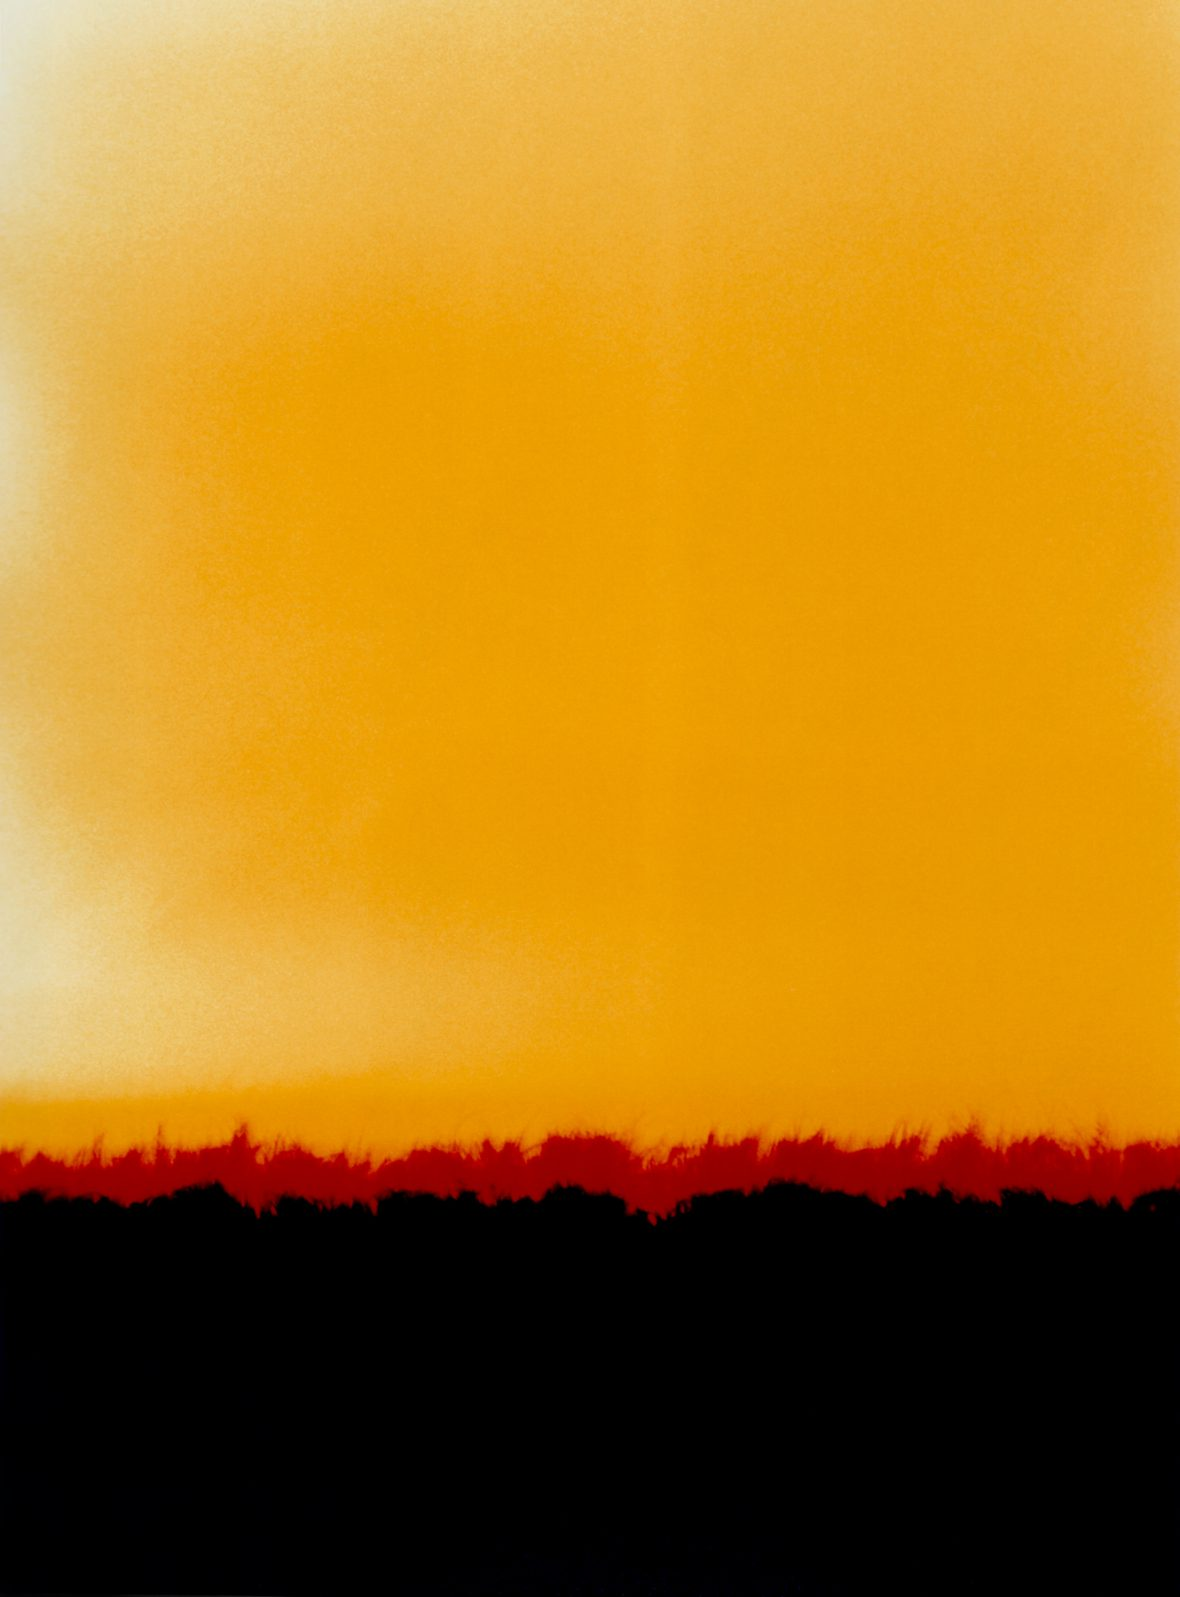 Ränder, 2003, C-print, 40x30cm, unique copy